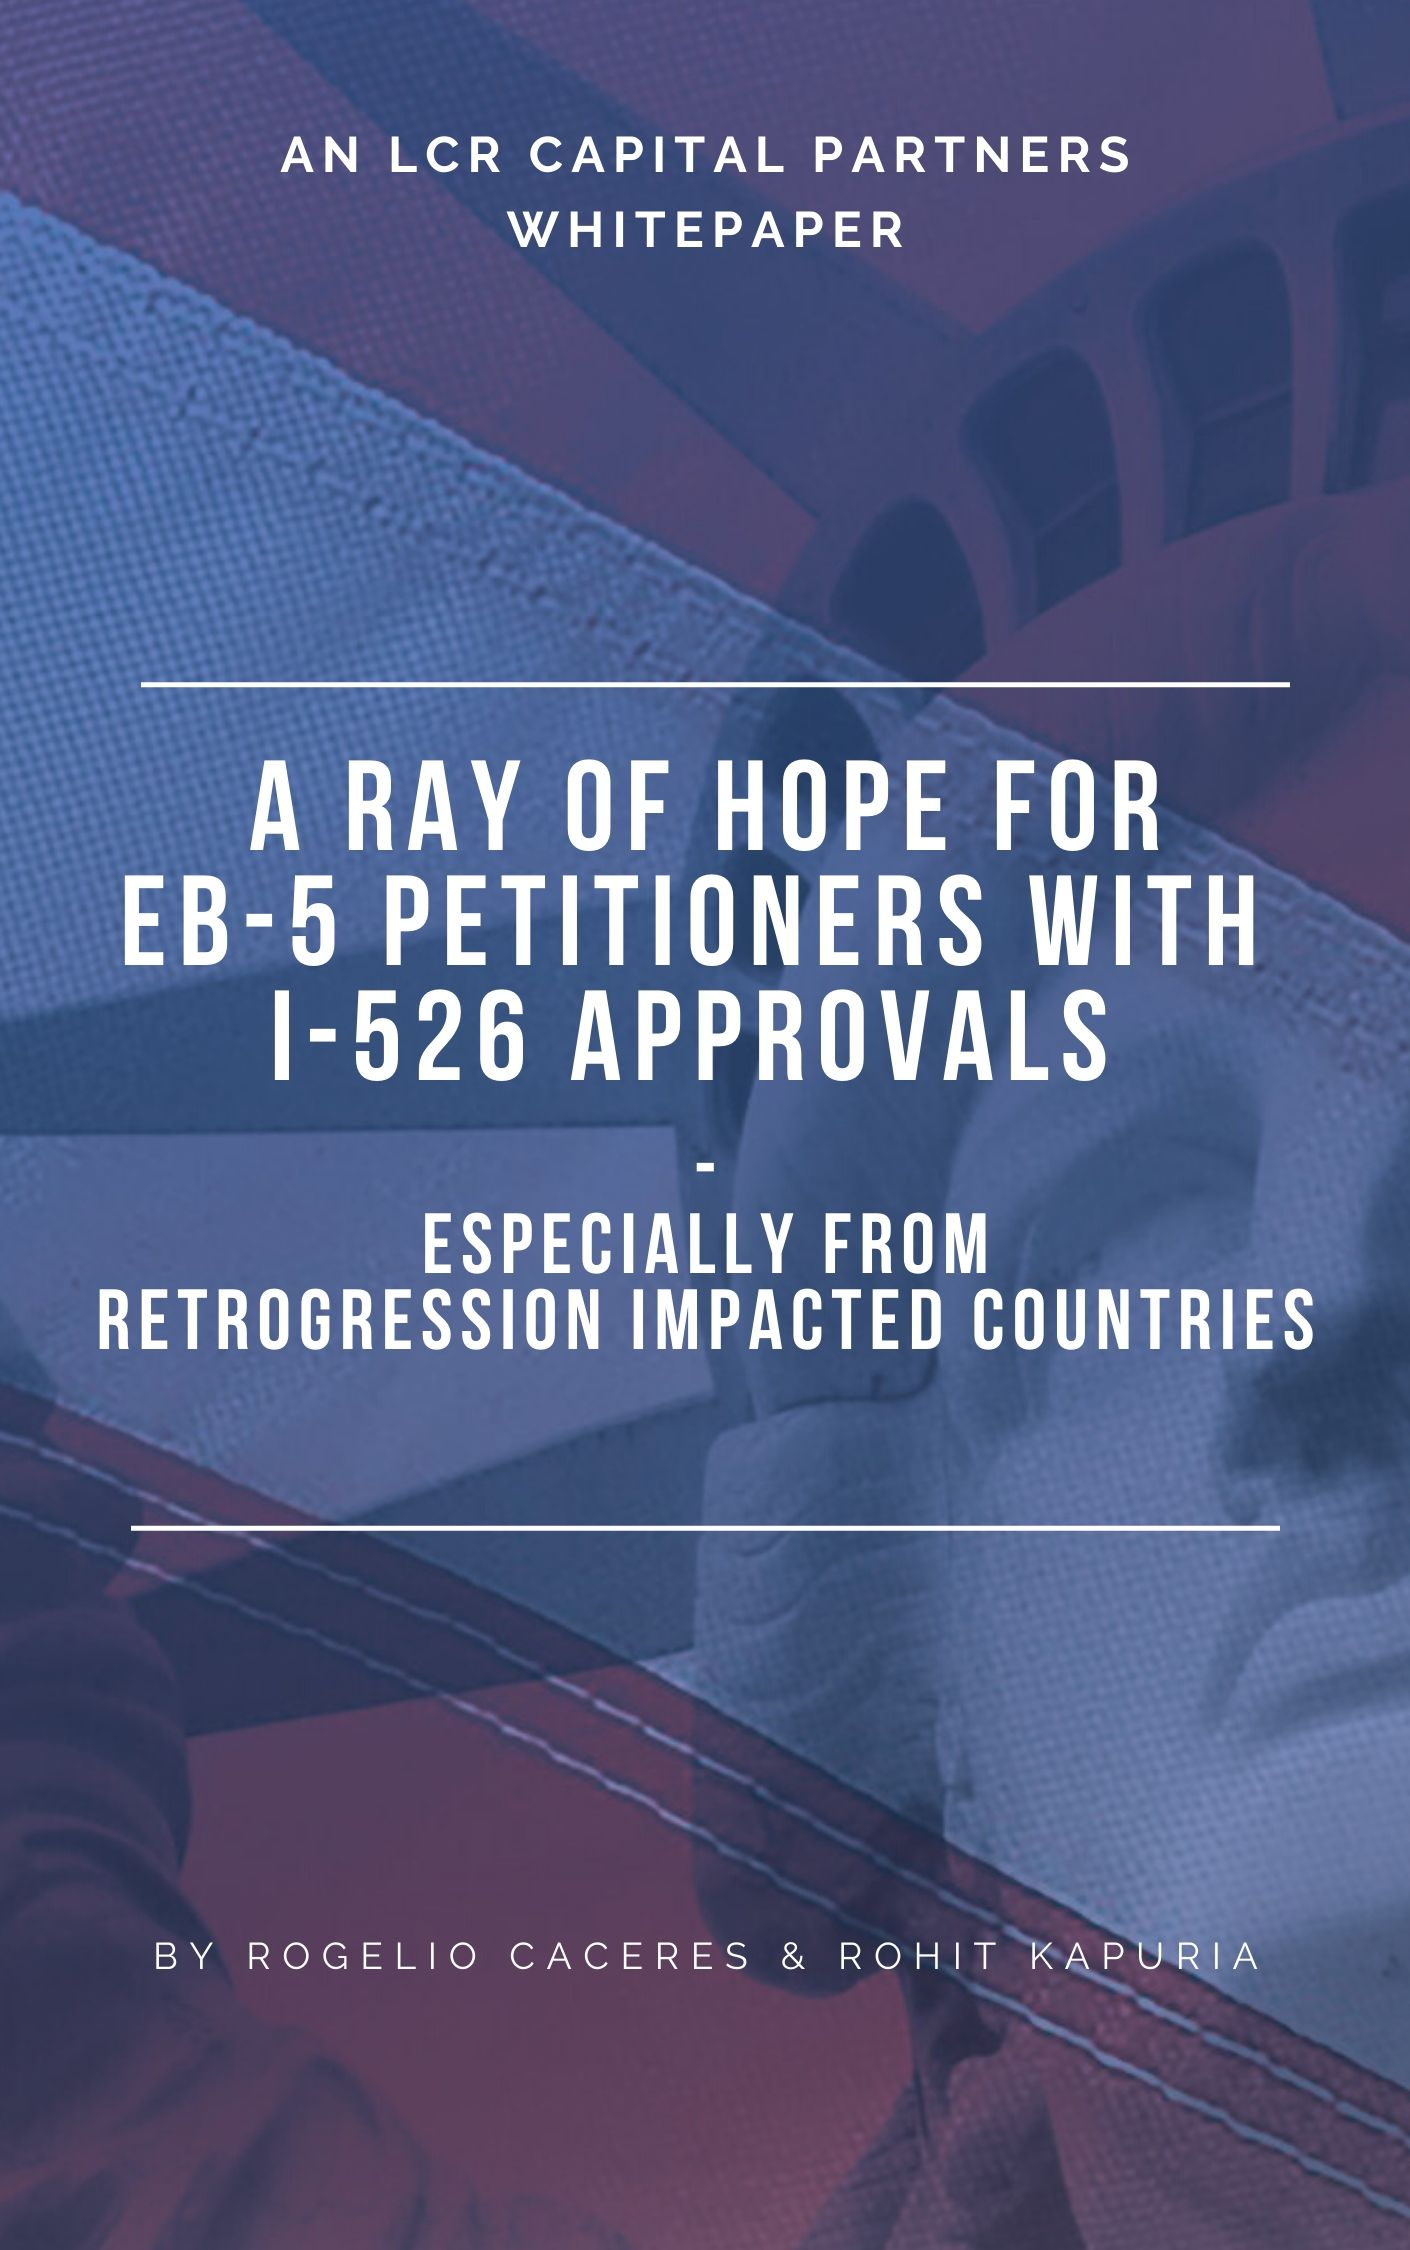 a ray of hope for eb-5 petitioners with i-526 approvals